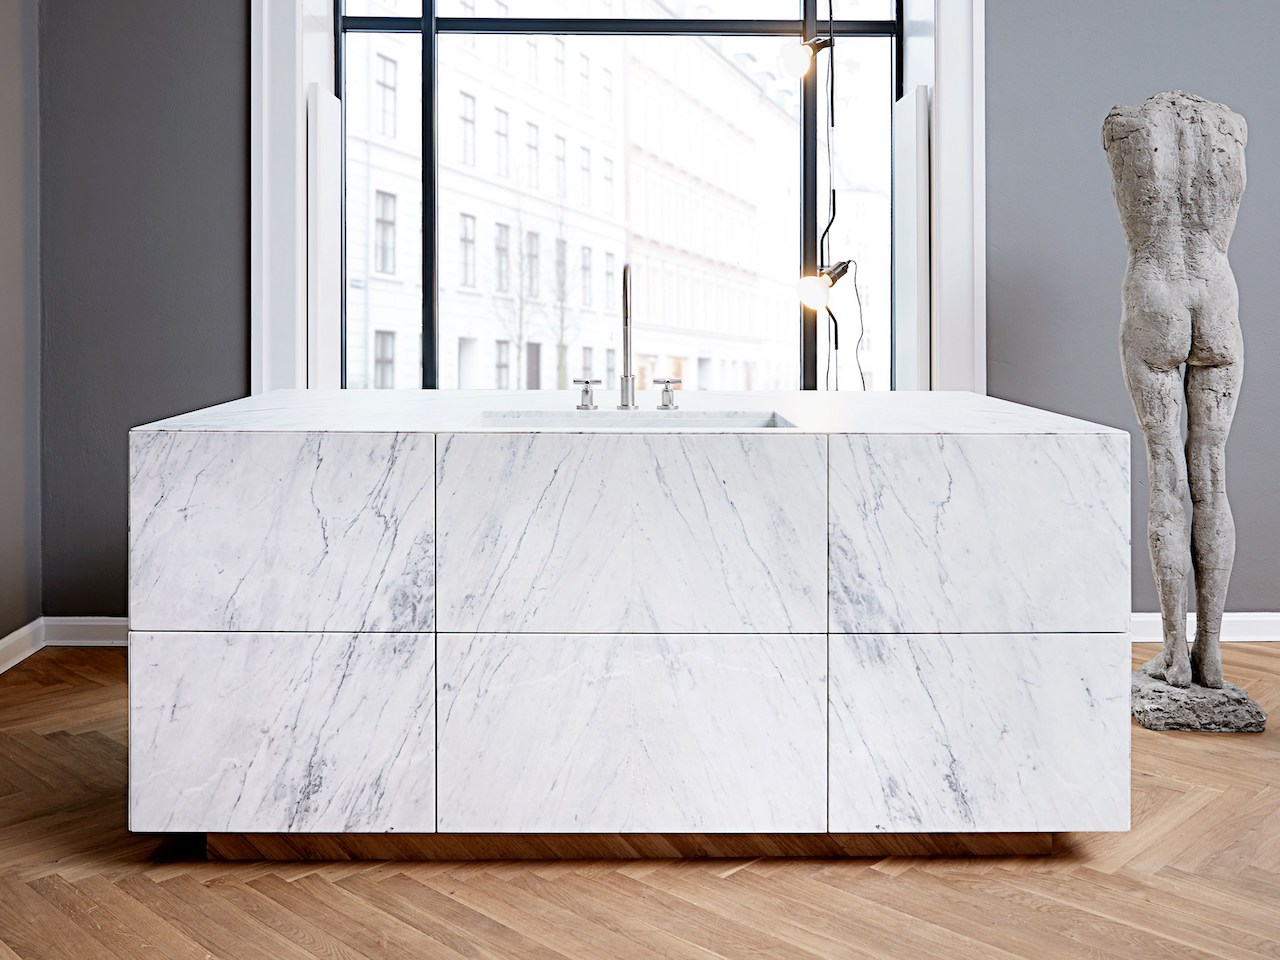 Form 45 Statuario venato marble kitchen, design Lene Halse Hornemann 2018, Multiform